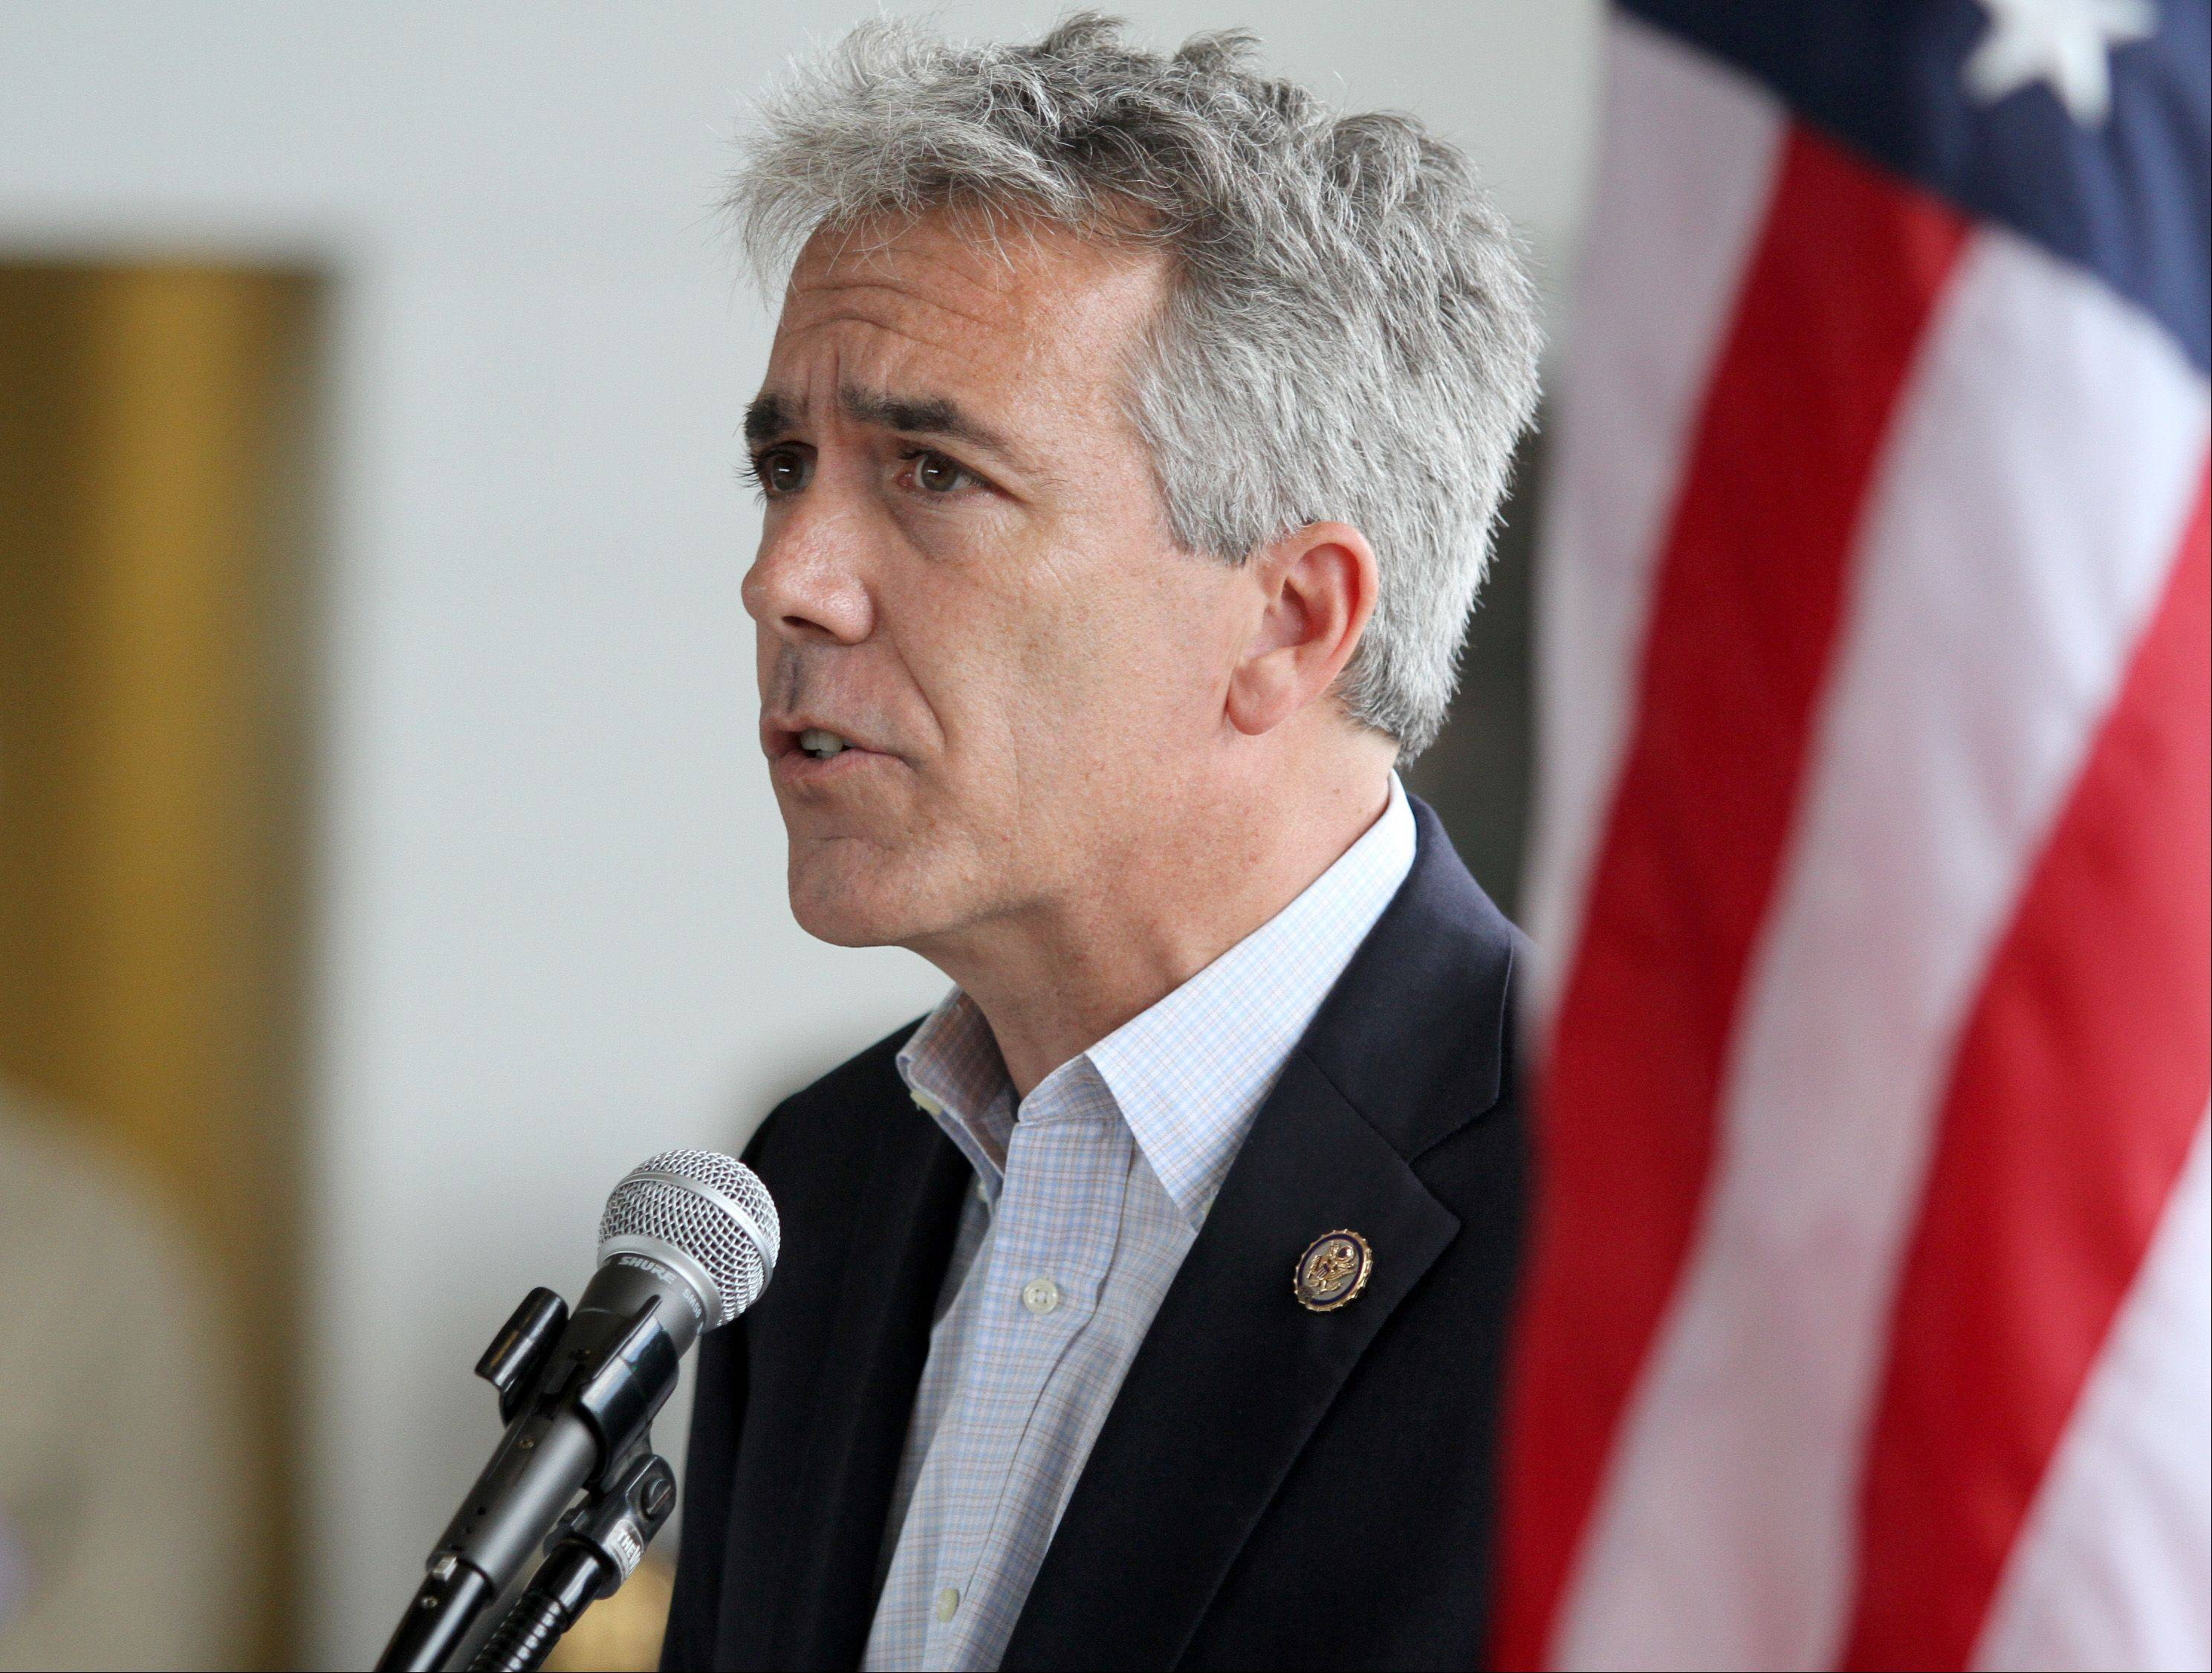 Former Congressman Joe Walsh of McHenry is making no secret of an interest in a run for state office, but he is traveling around the state to gauge support first.